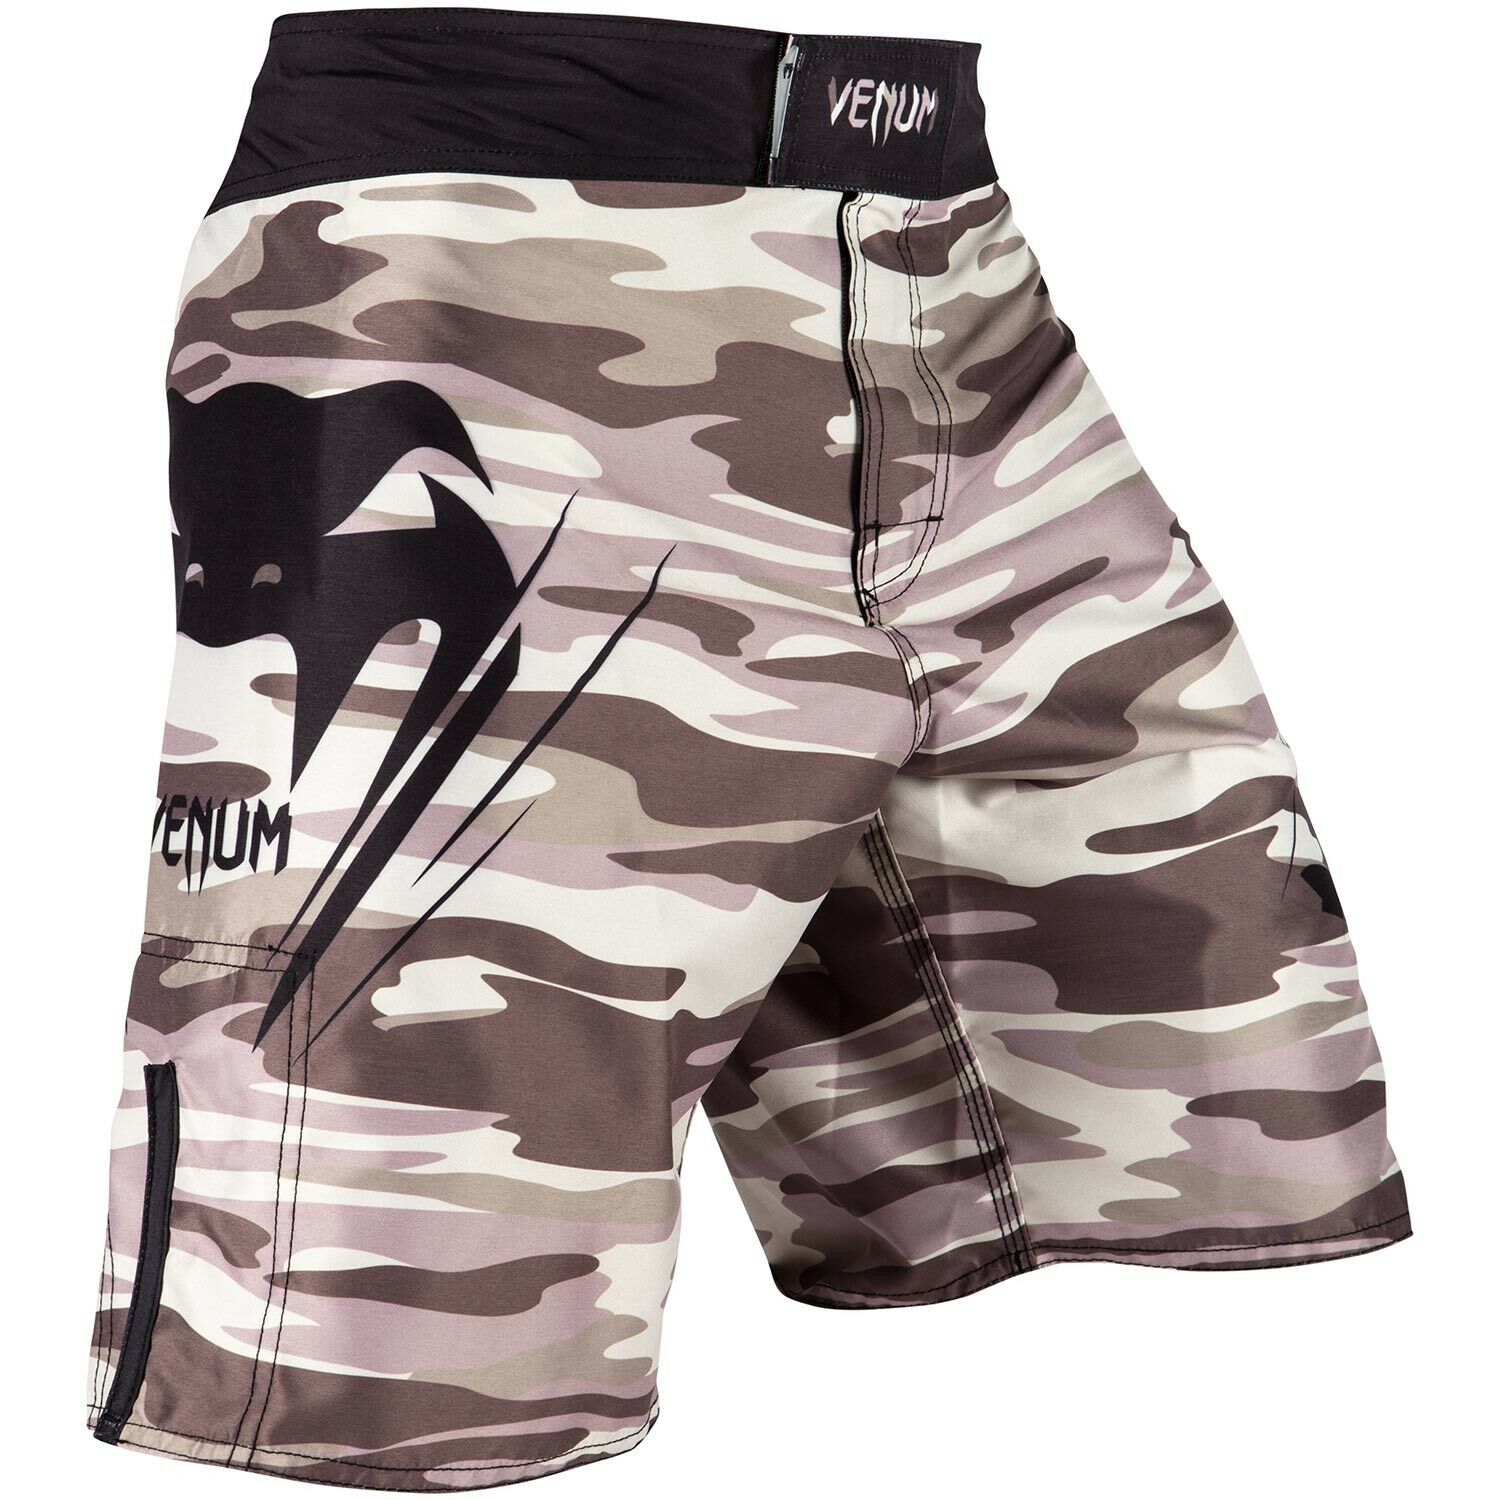 10d3adb85c Make no compromise between performance and style with the Venum Wave Camo  fightshort. These Venum fight shorts ...